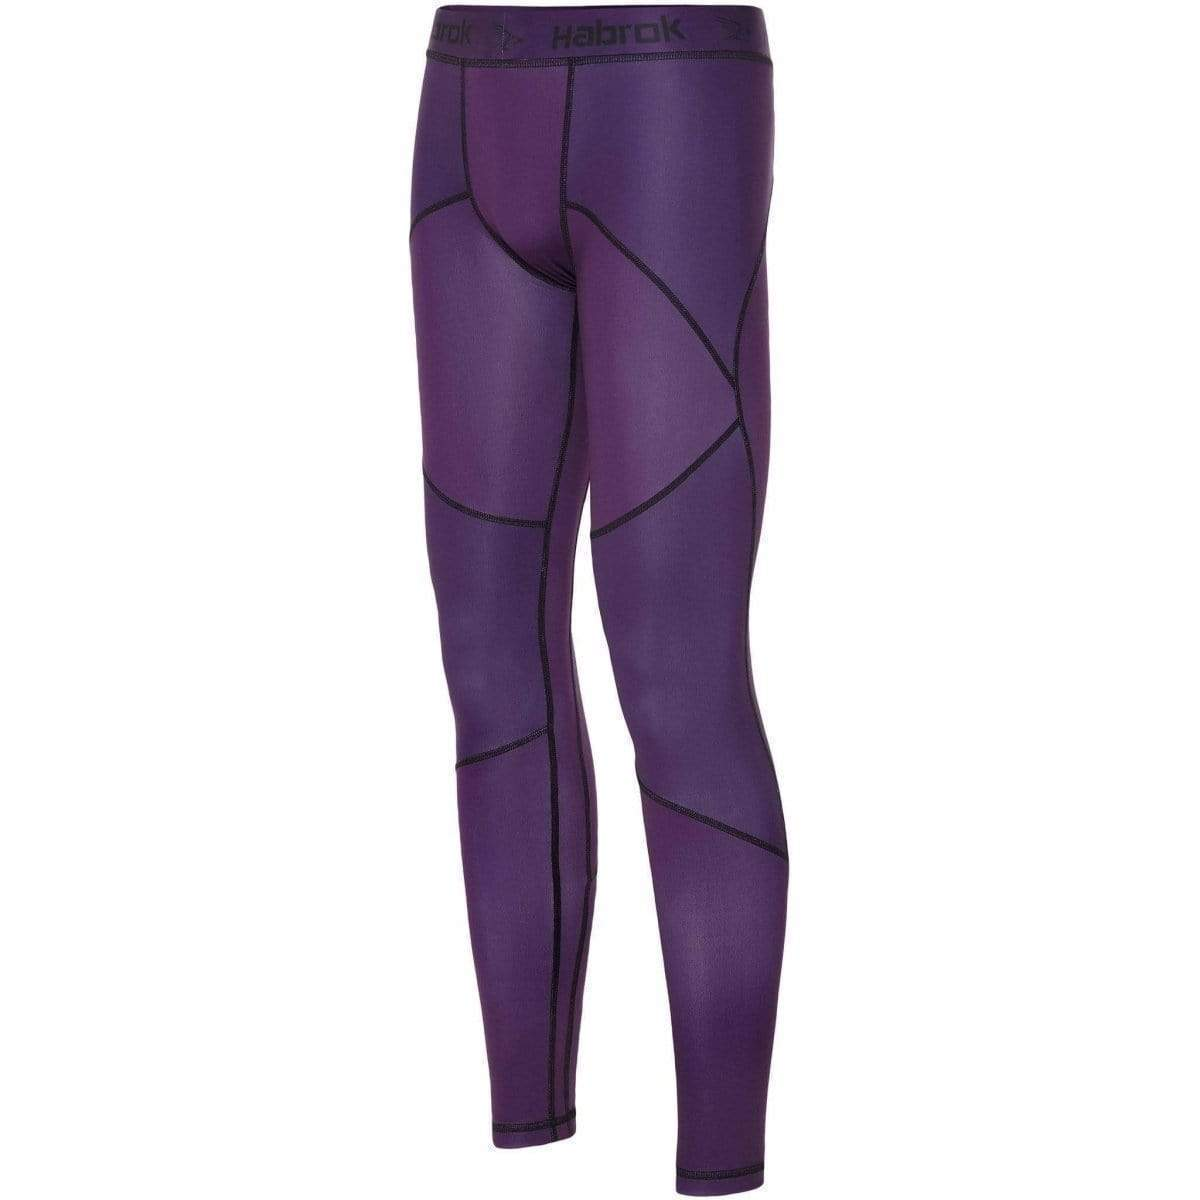 Habrok Spats S / PURPLE Pugnator | Compression Pants | Men